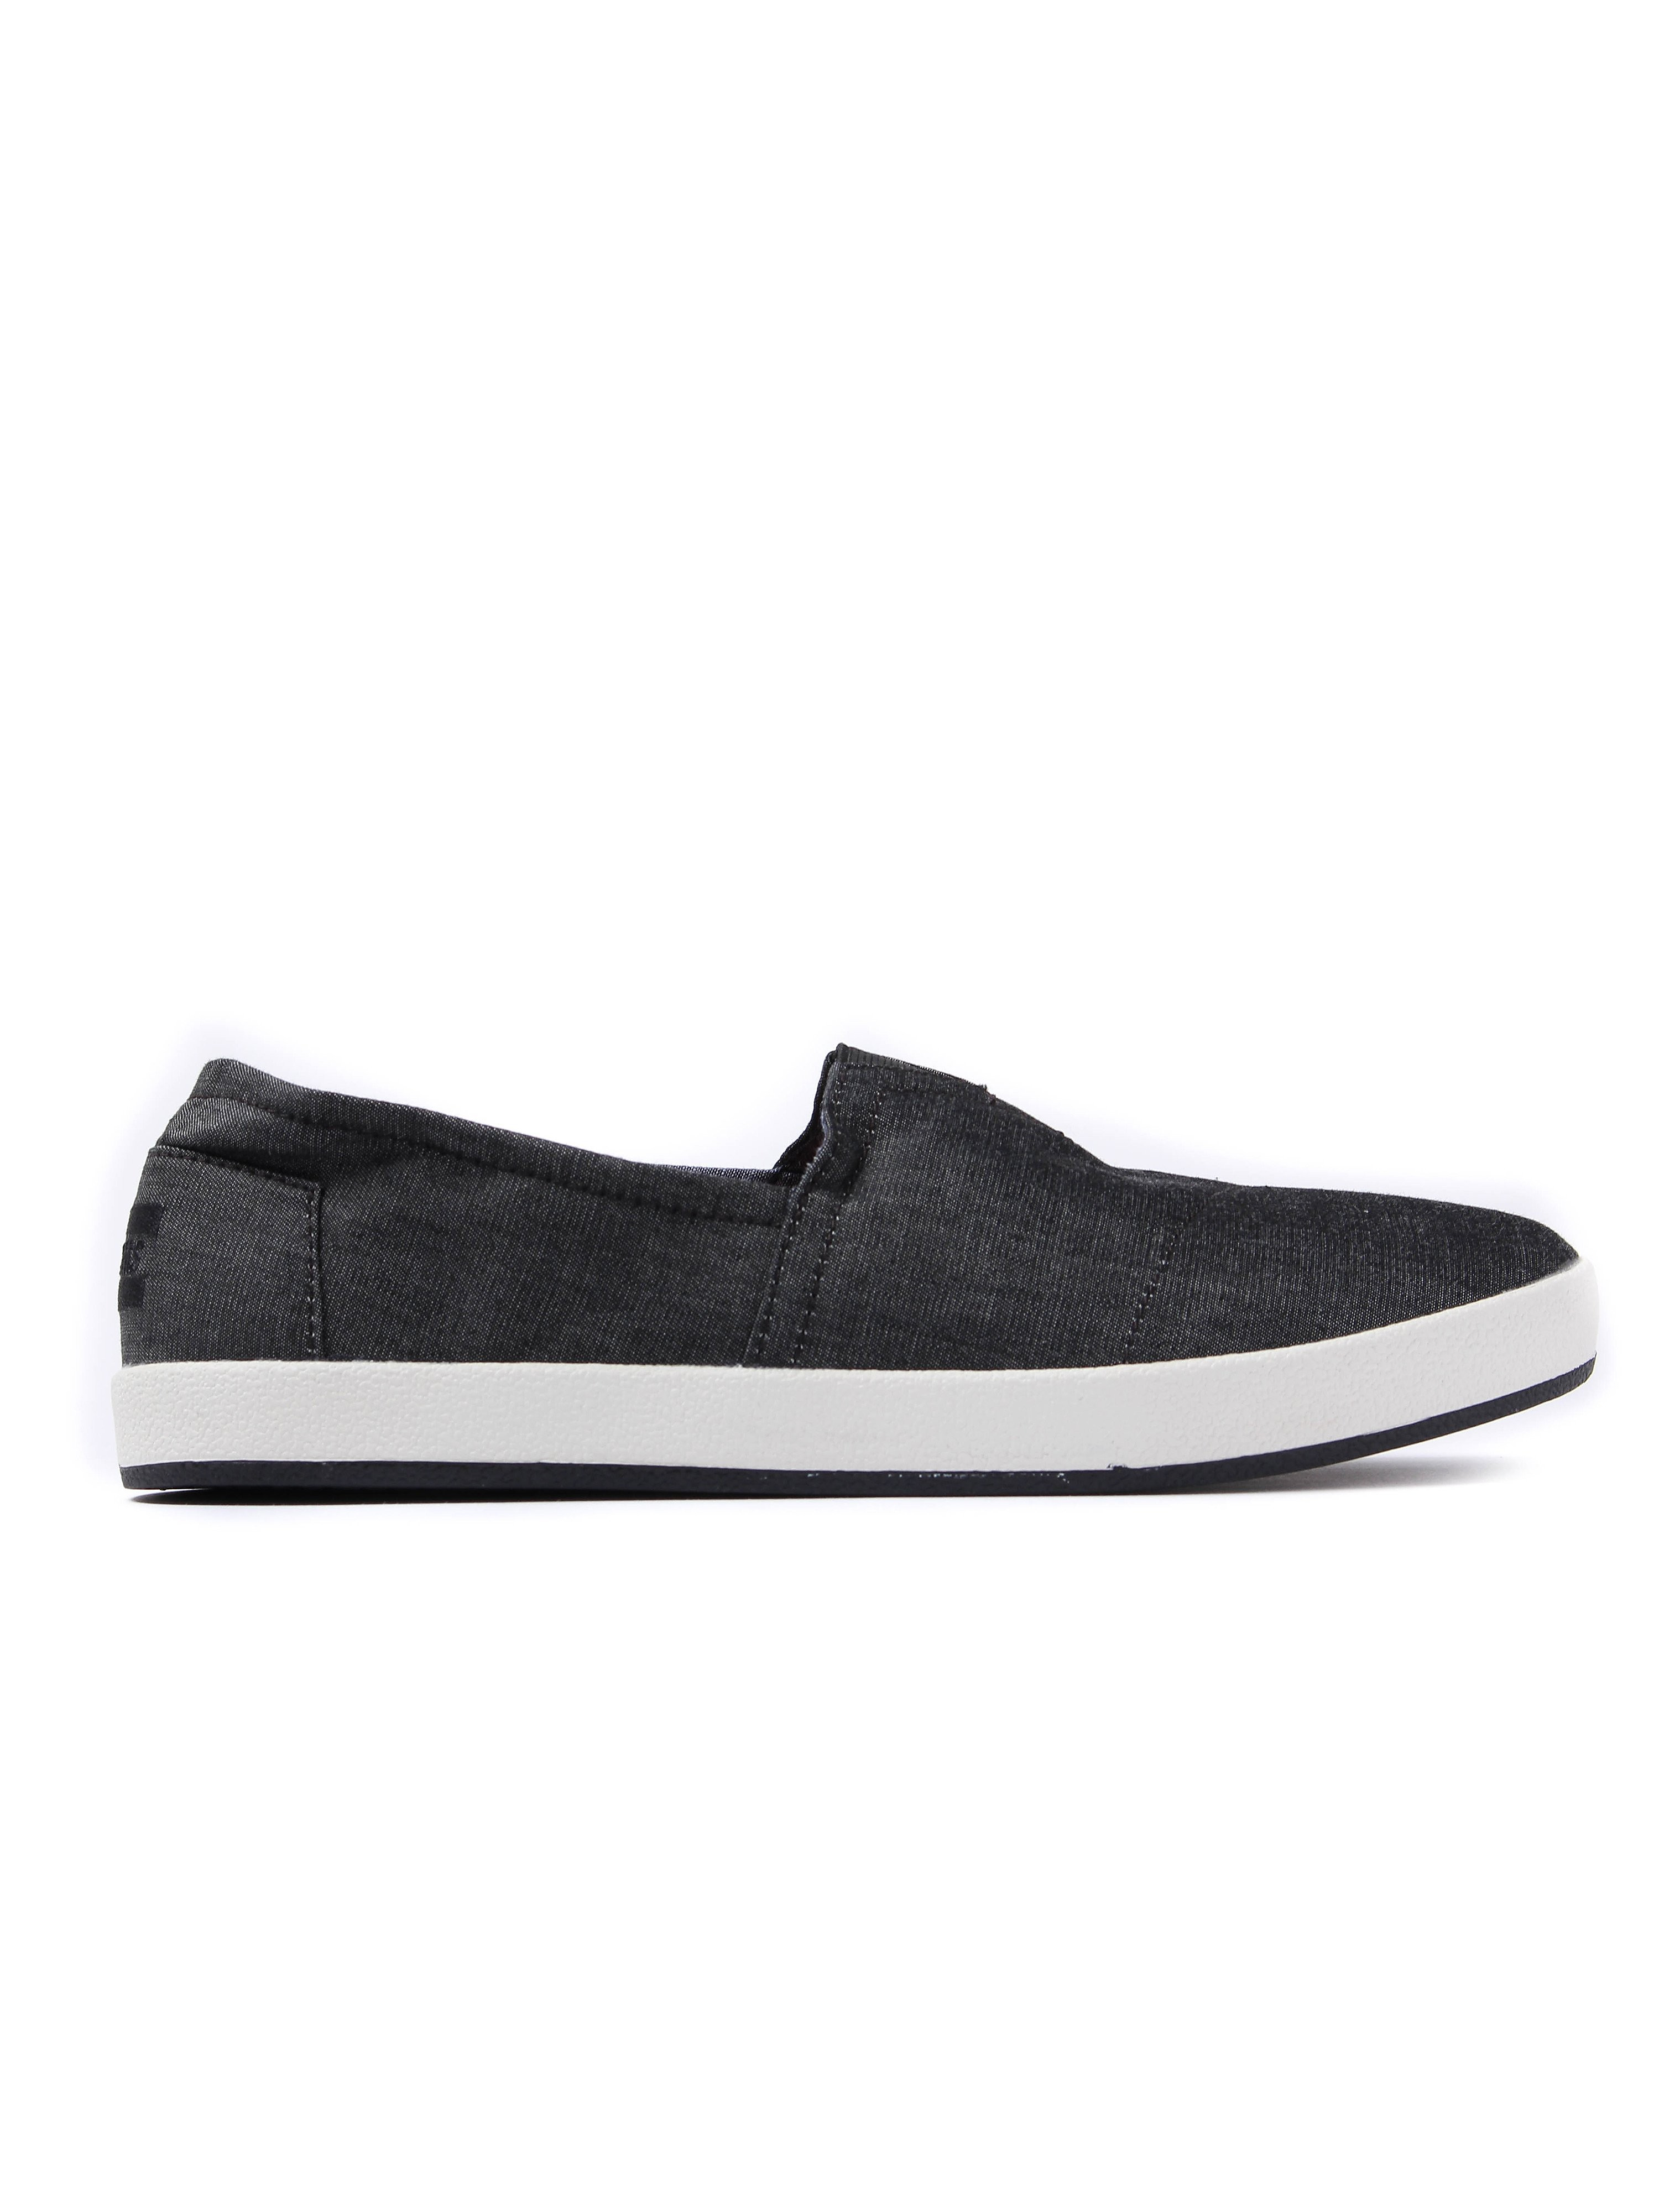 Toms Men's Avalon Chambray Canvas Espadrilles - Black